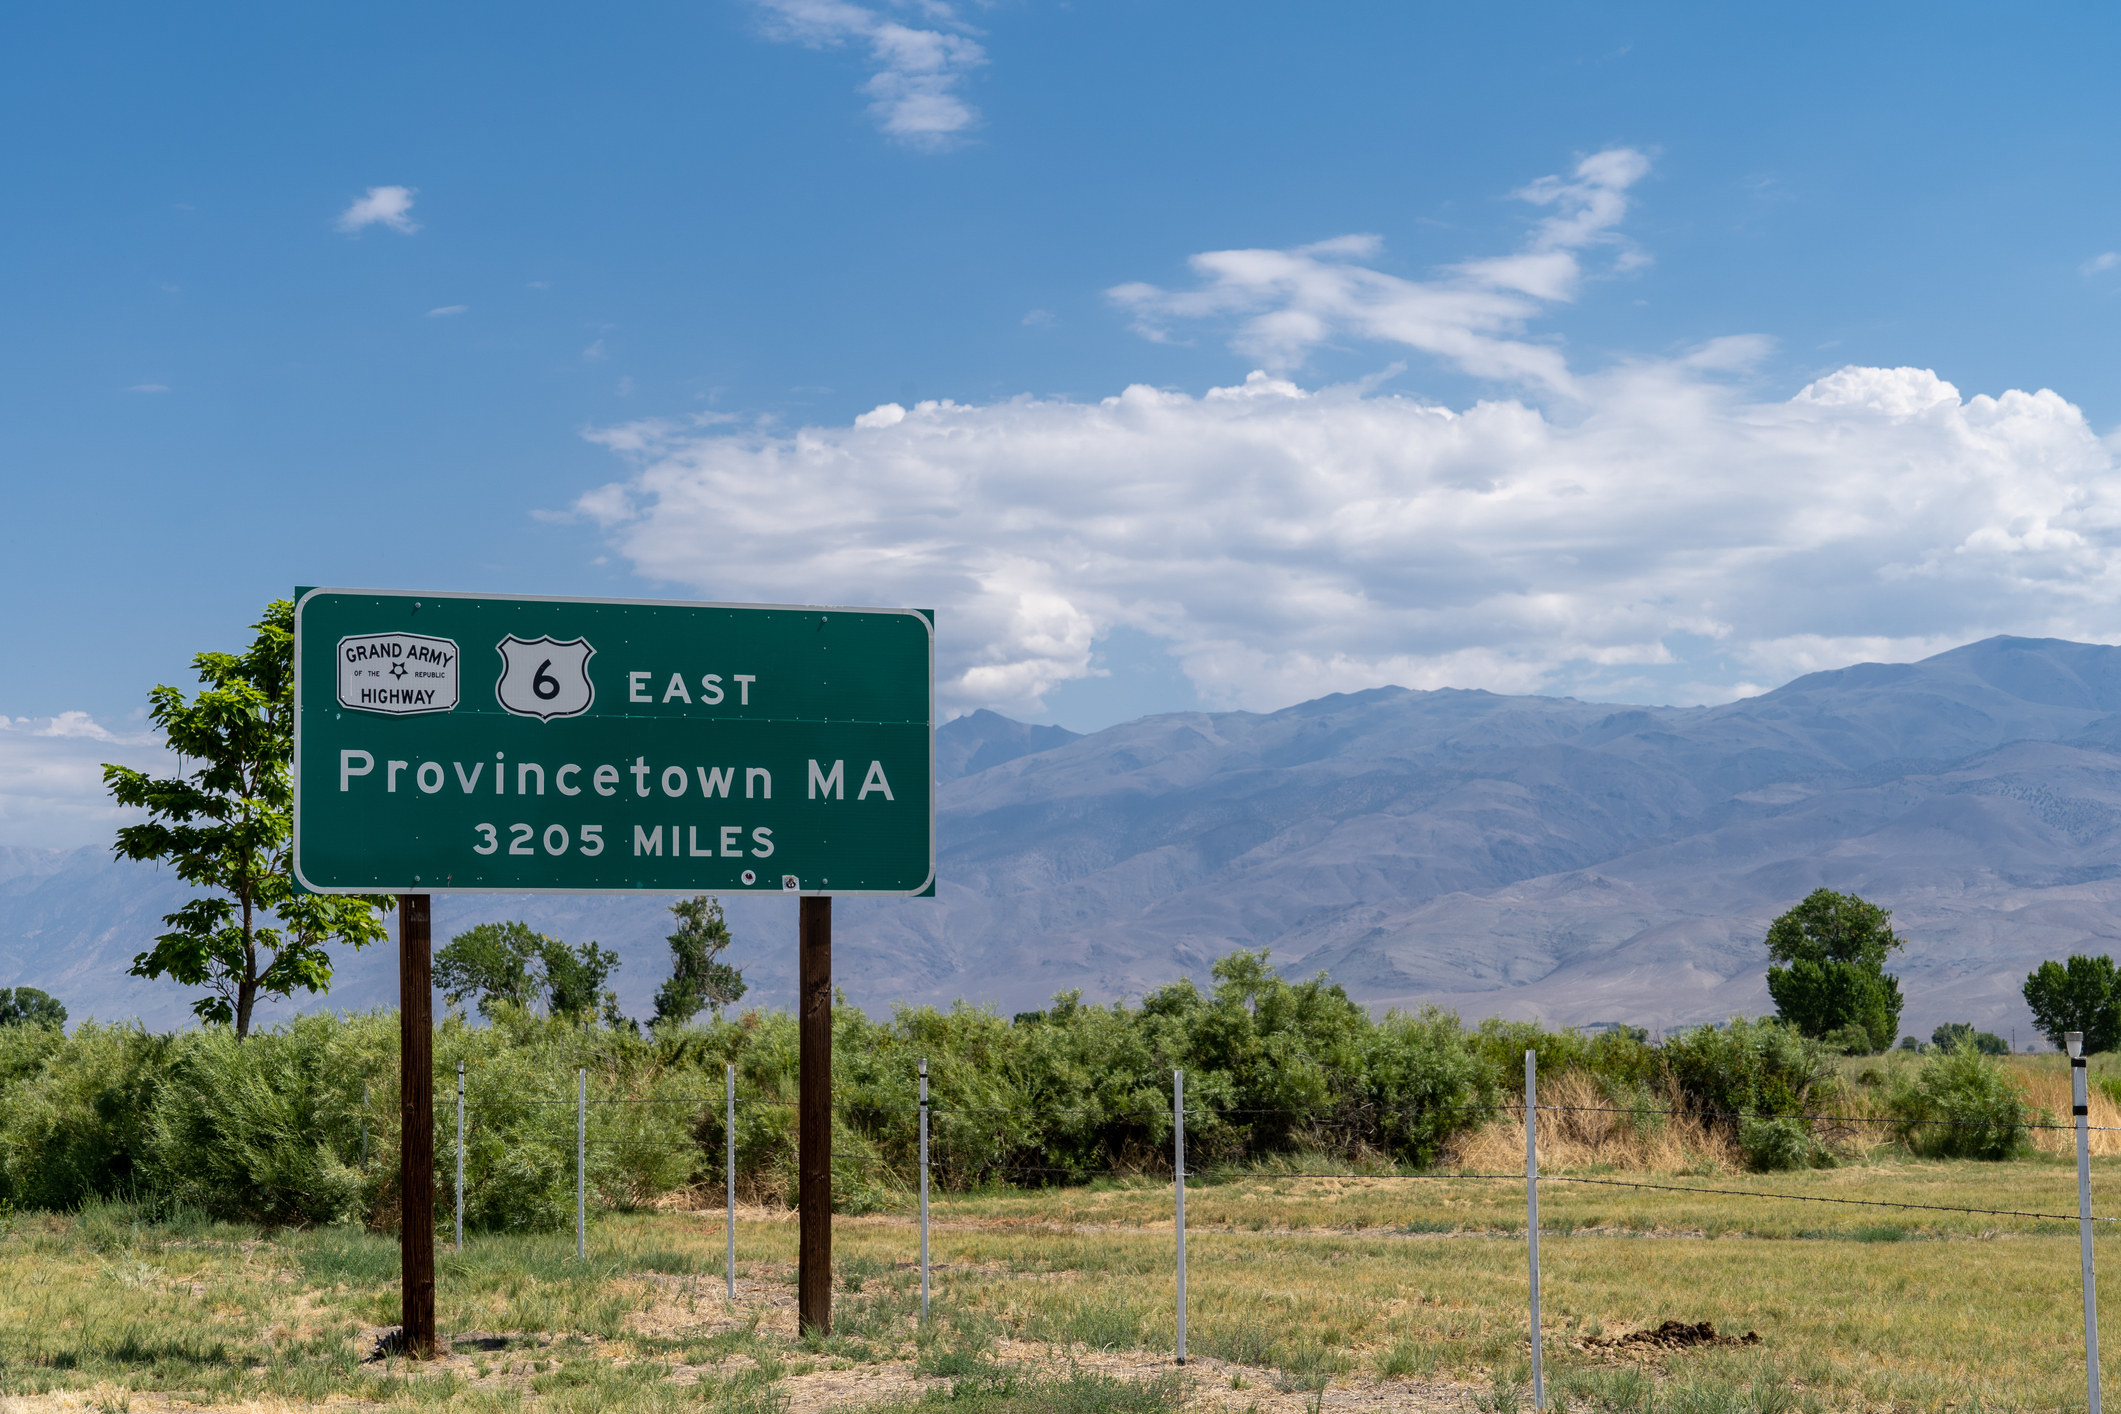 Sign for the Grand Army of the Republic Highway, noting that the end of the highway located in Provincetown Massachusetts is over 3000 miles away from Bishop California